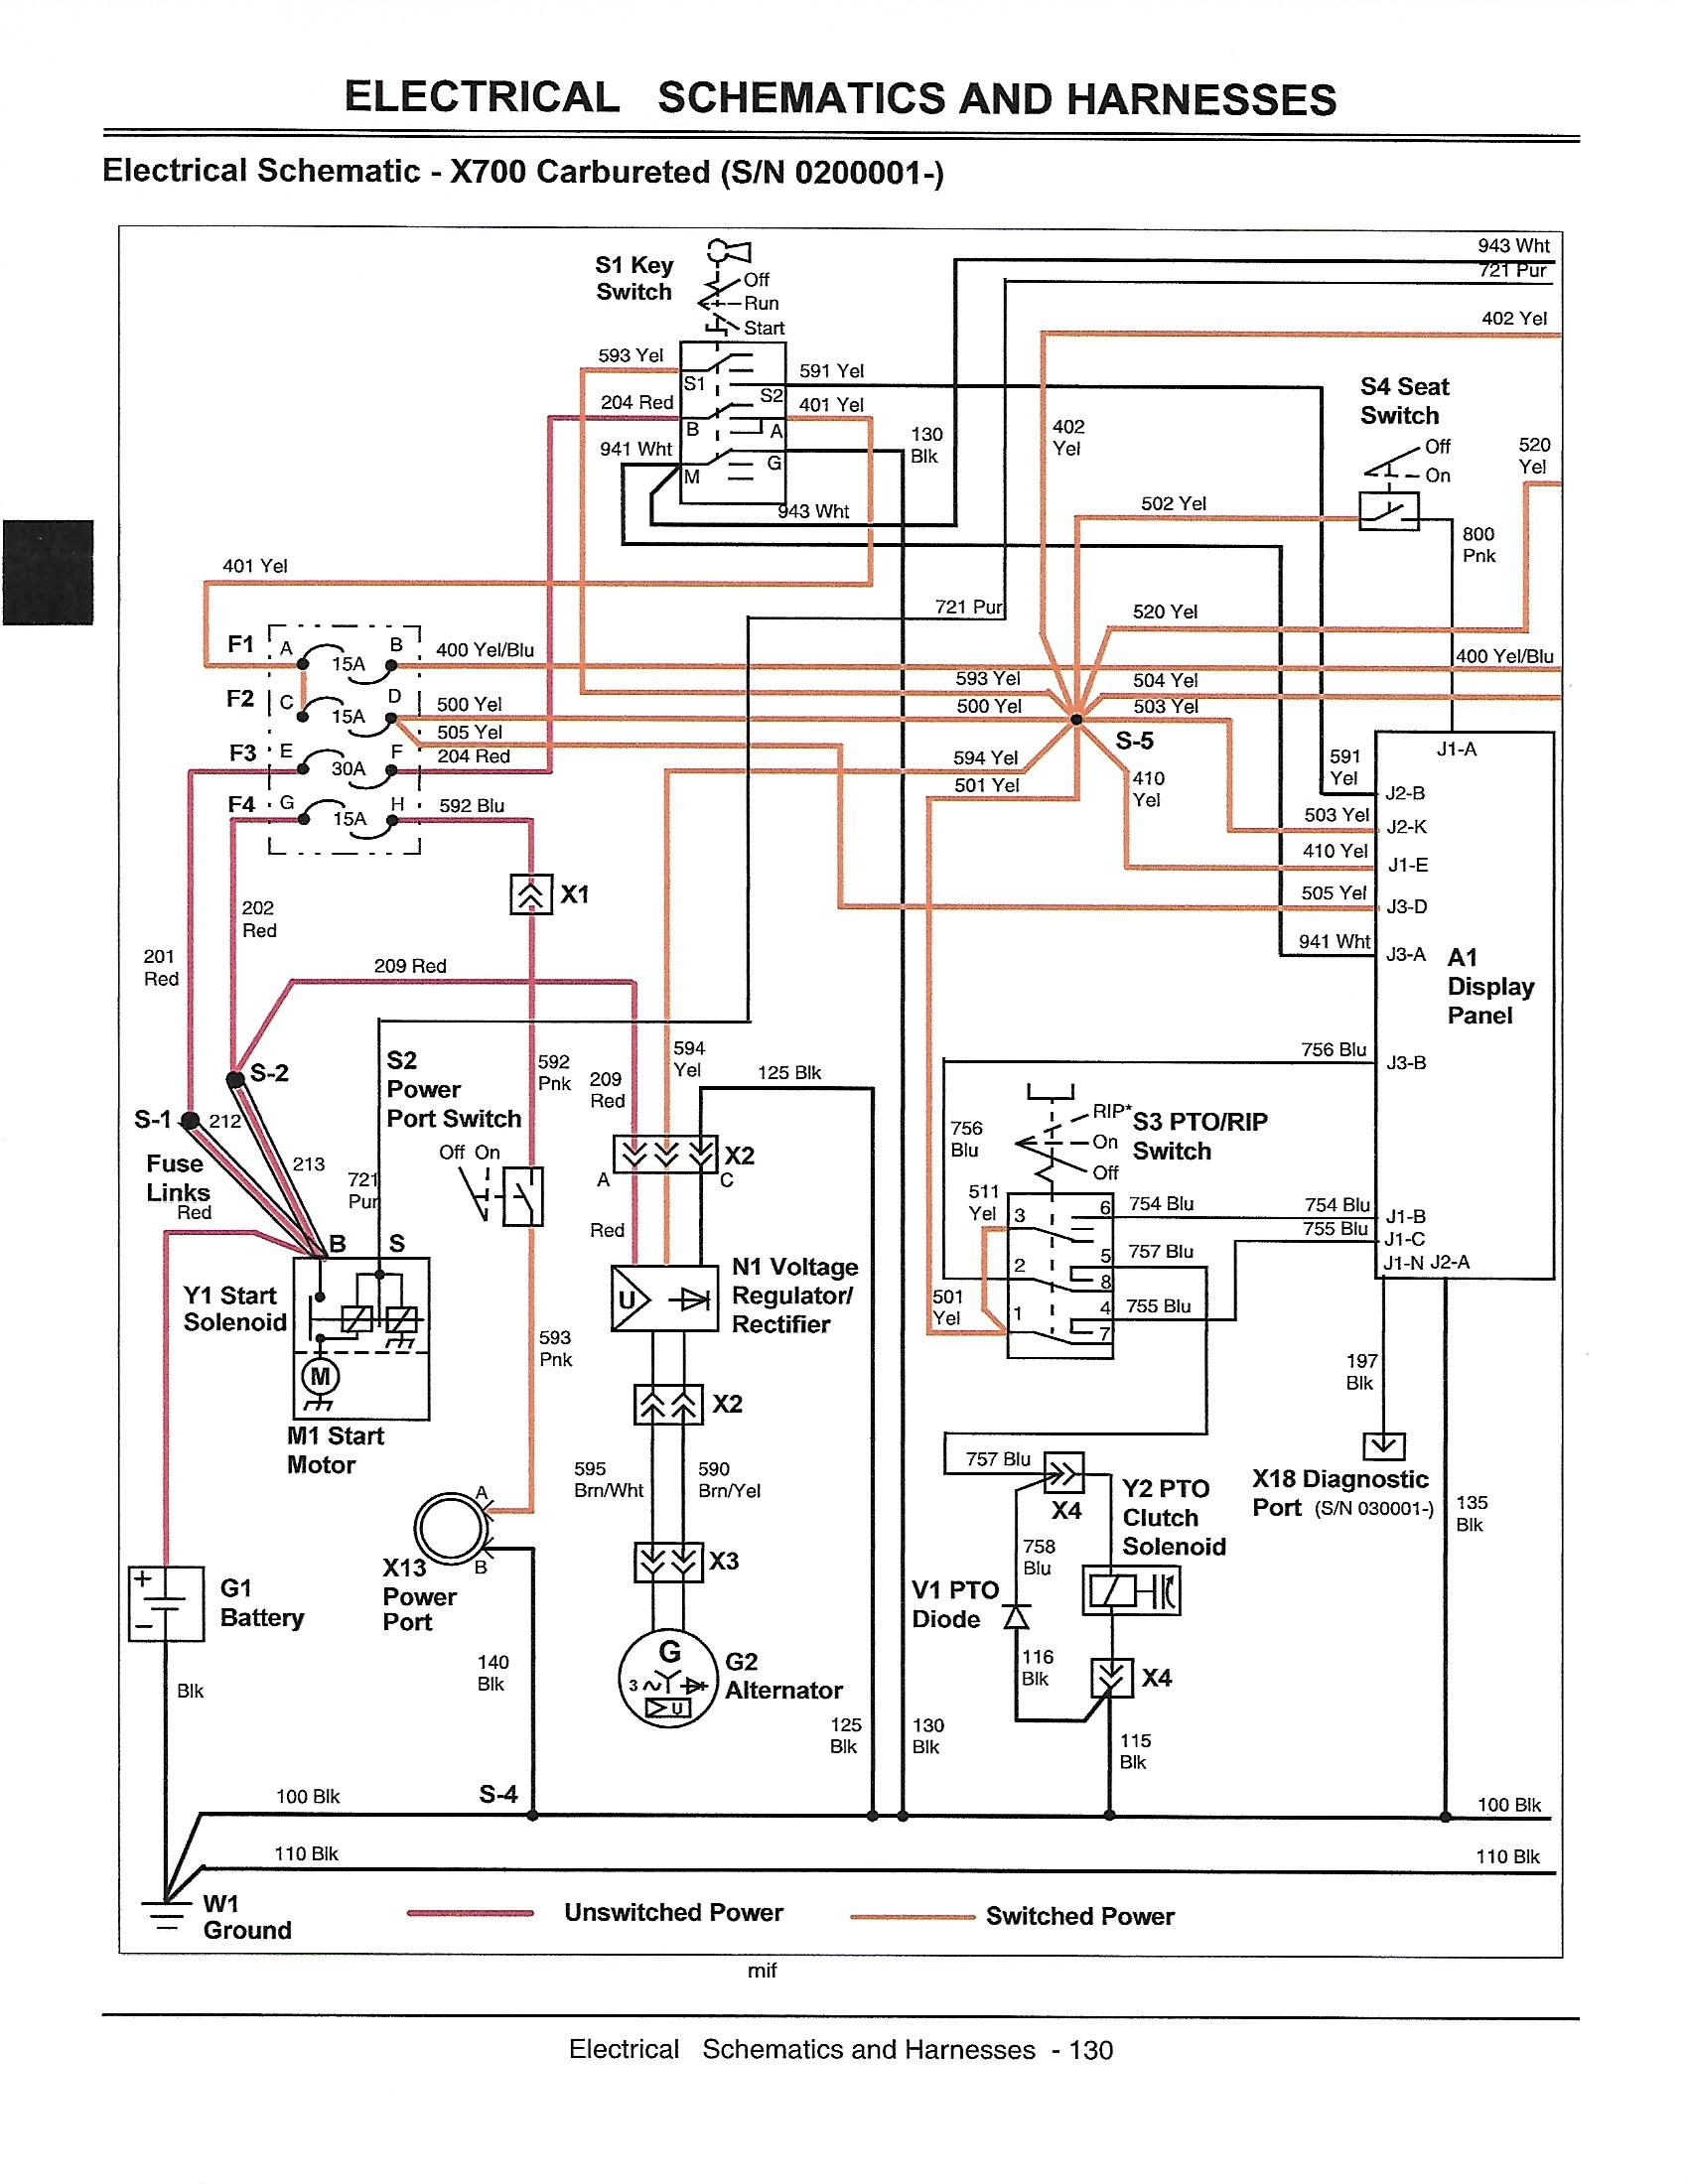 X700 electrical issues - Page 2 - MyTractorForum.com - The ... on